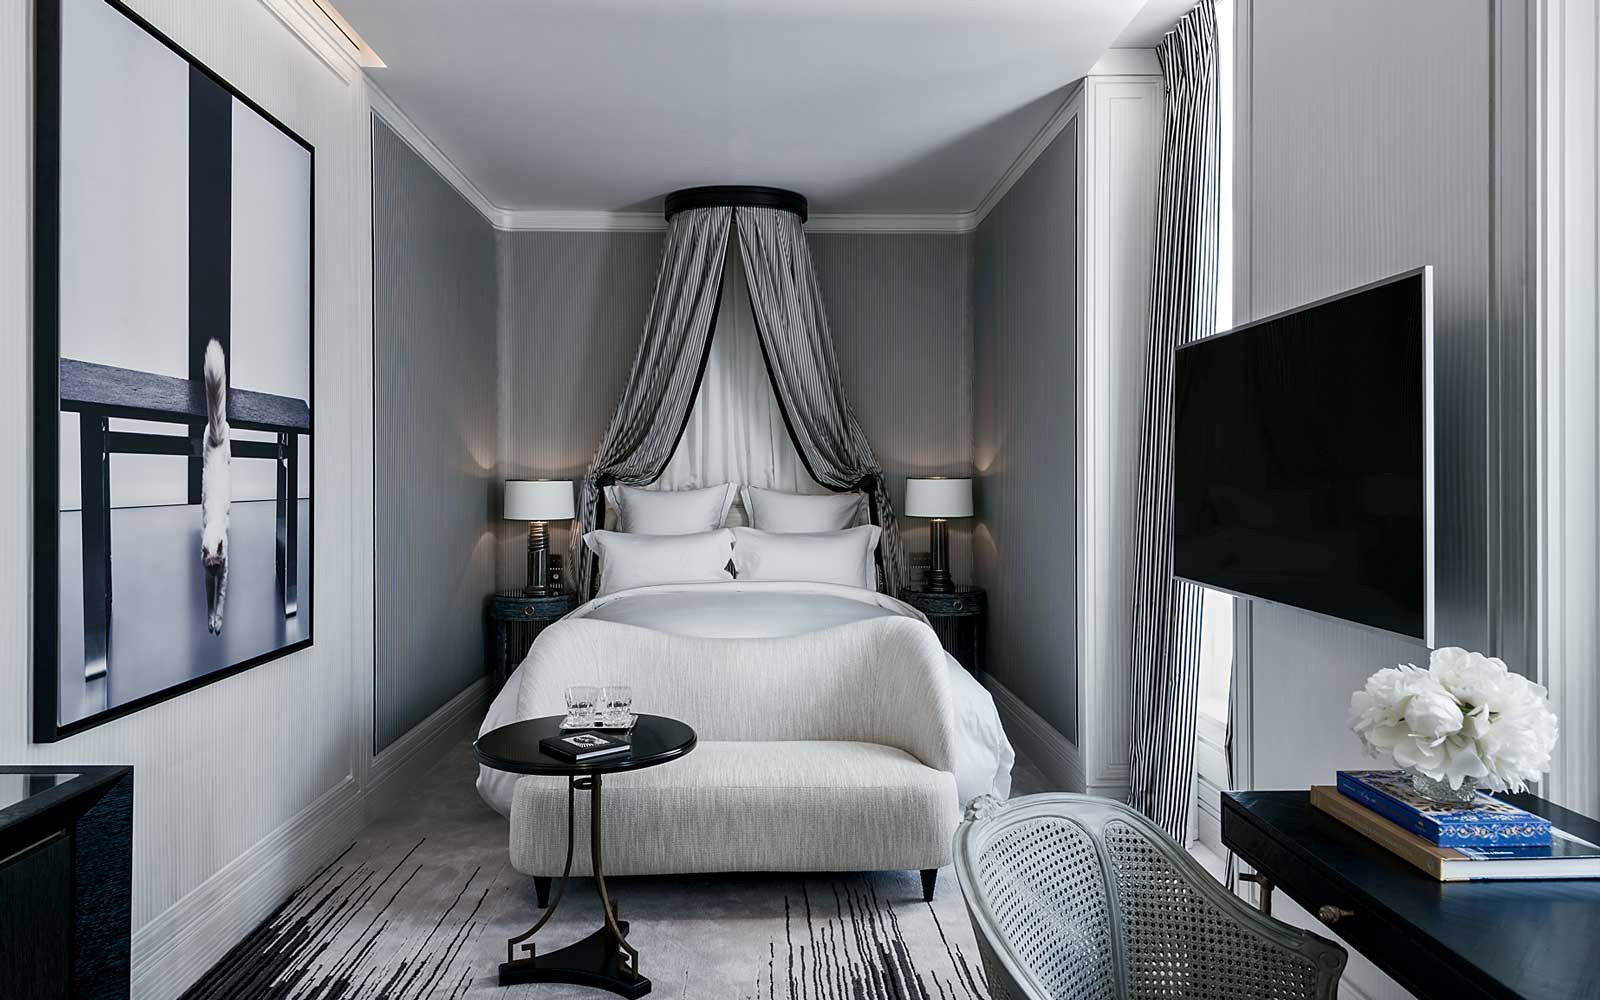 A guest room at the Hotel de Crillon in Paris, France